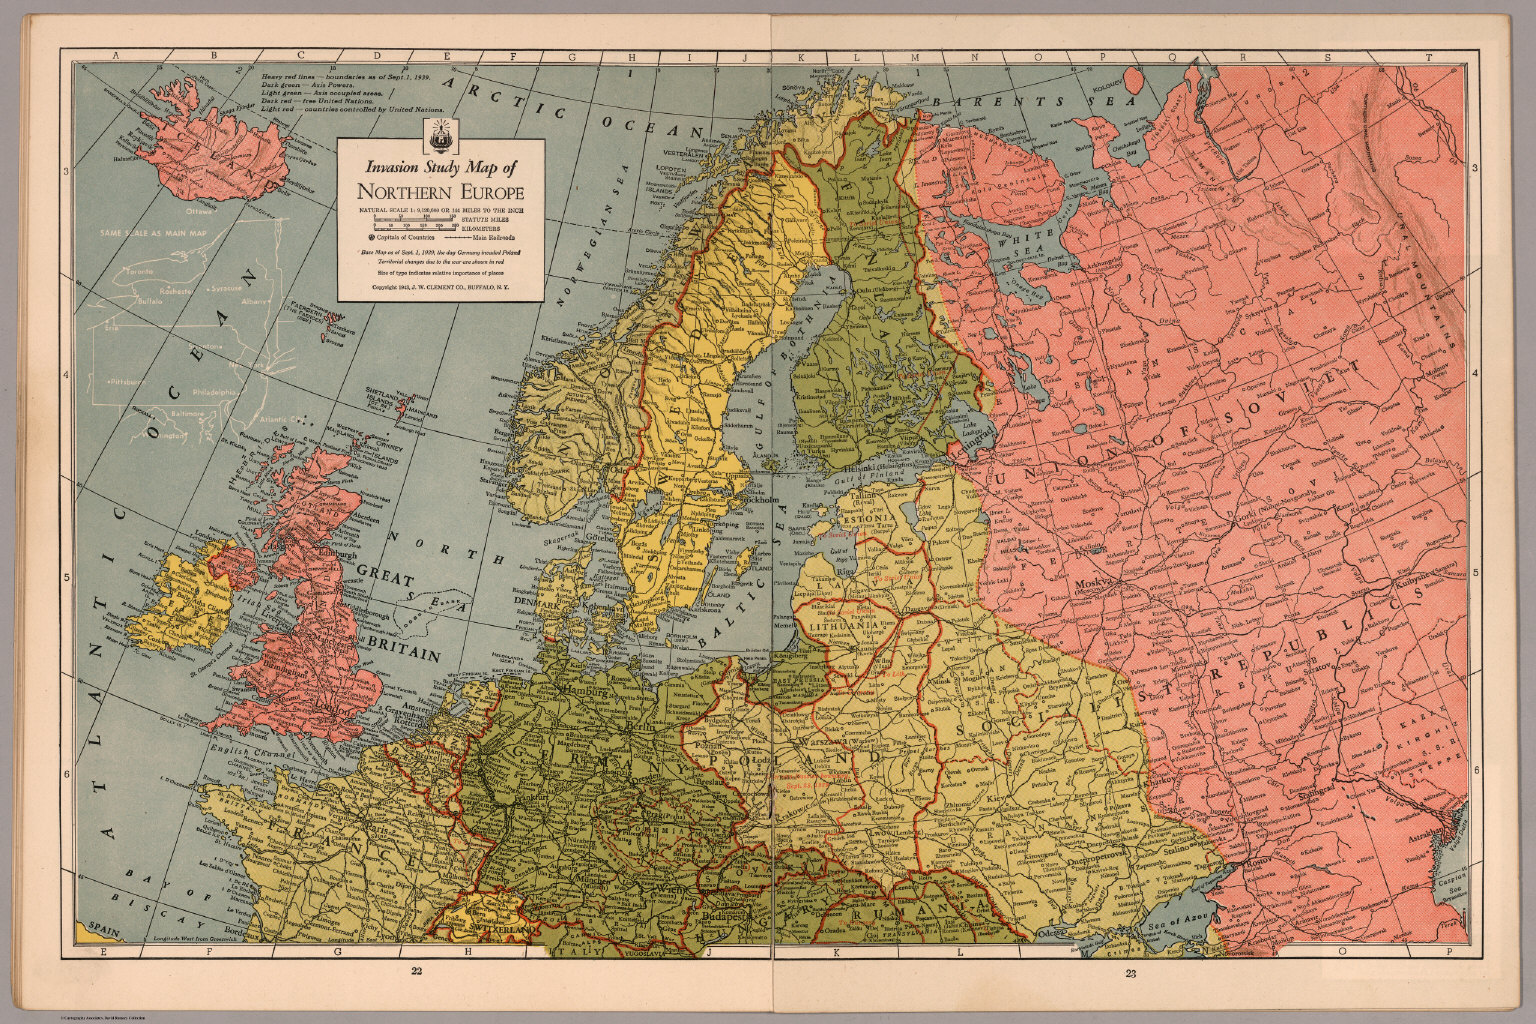 Invasion Study map of Northern Europe - David Rumsey Historical Map ...